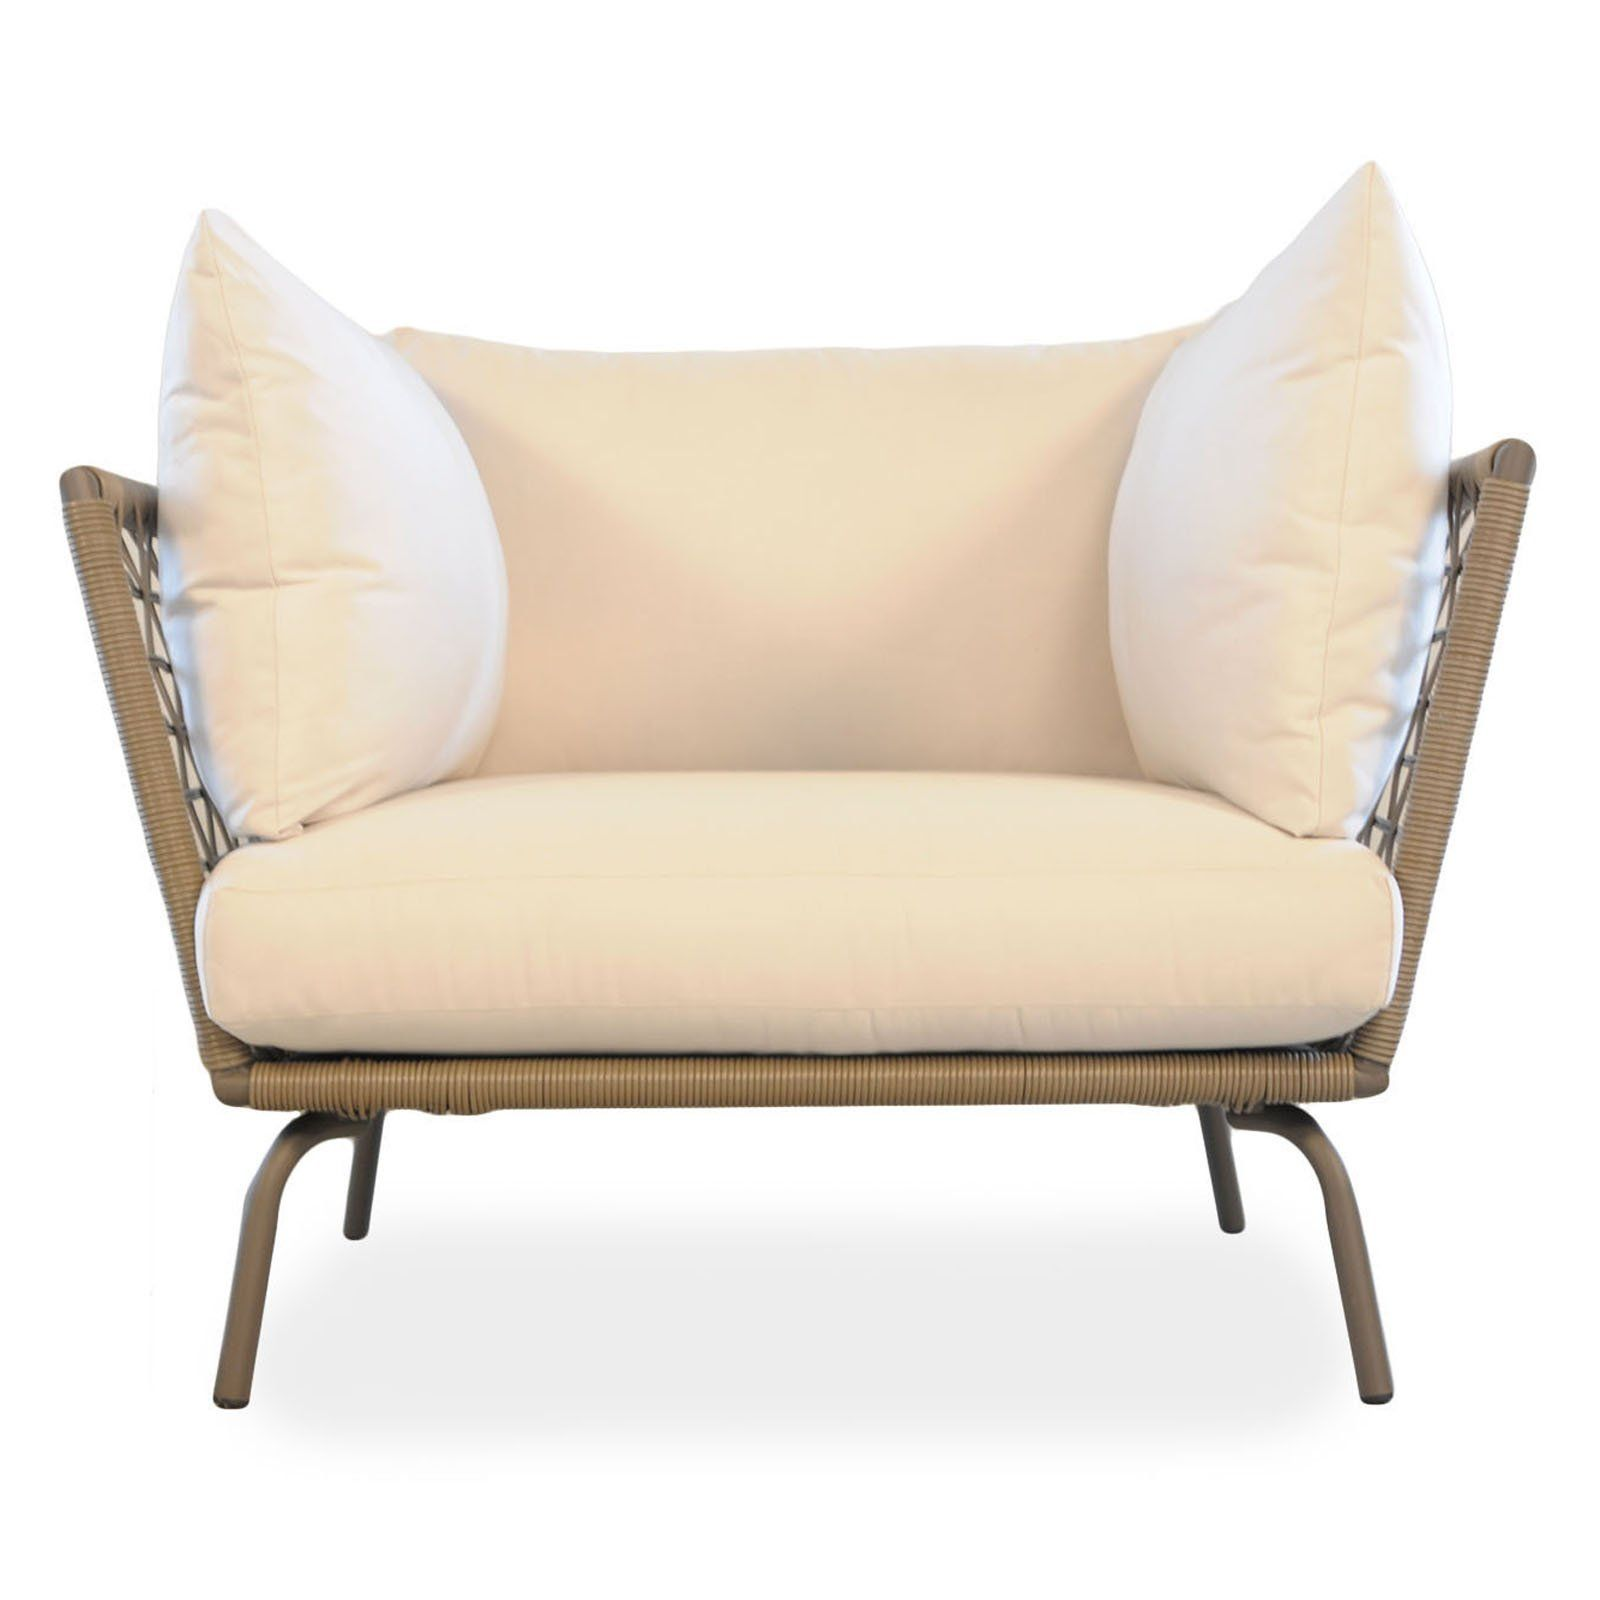 Have to have it. Lloyd Flanders SoHo All-Weather Wicker Lounge Chair $851.2